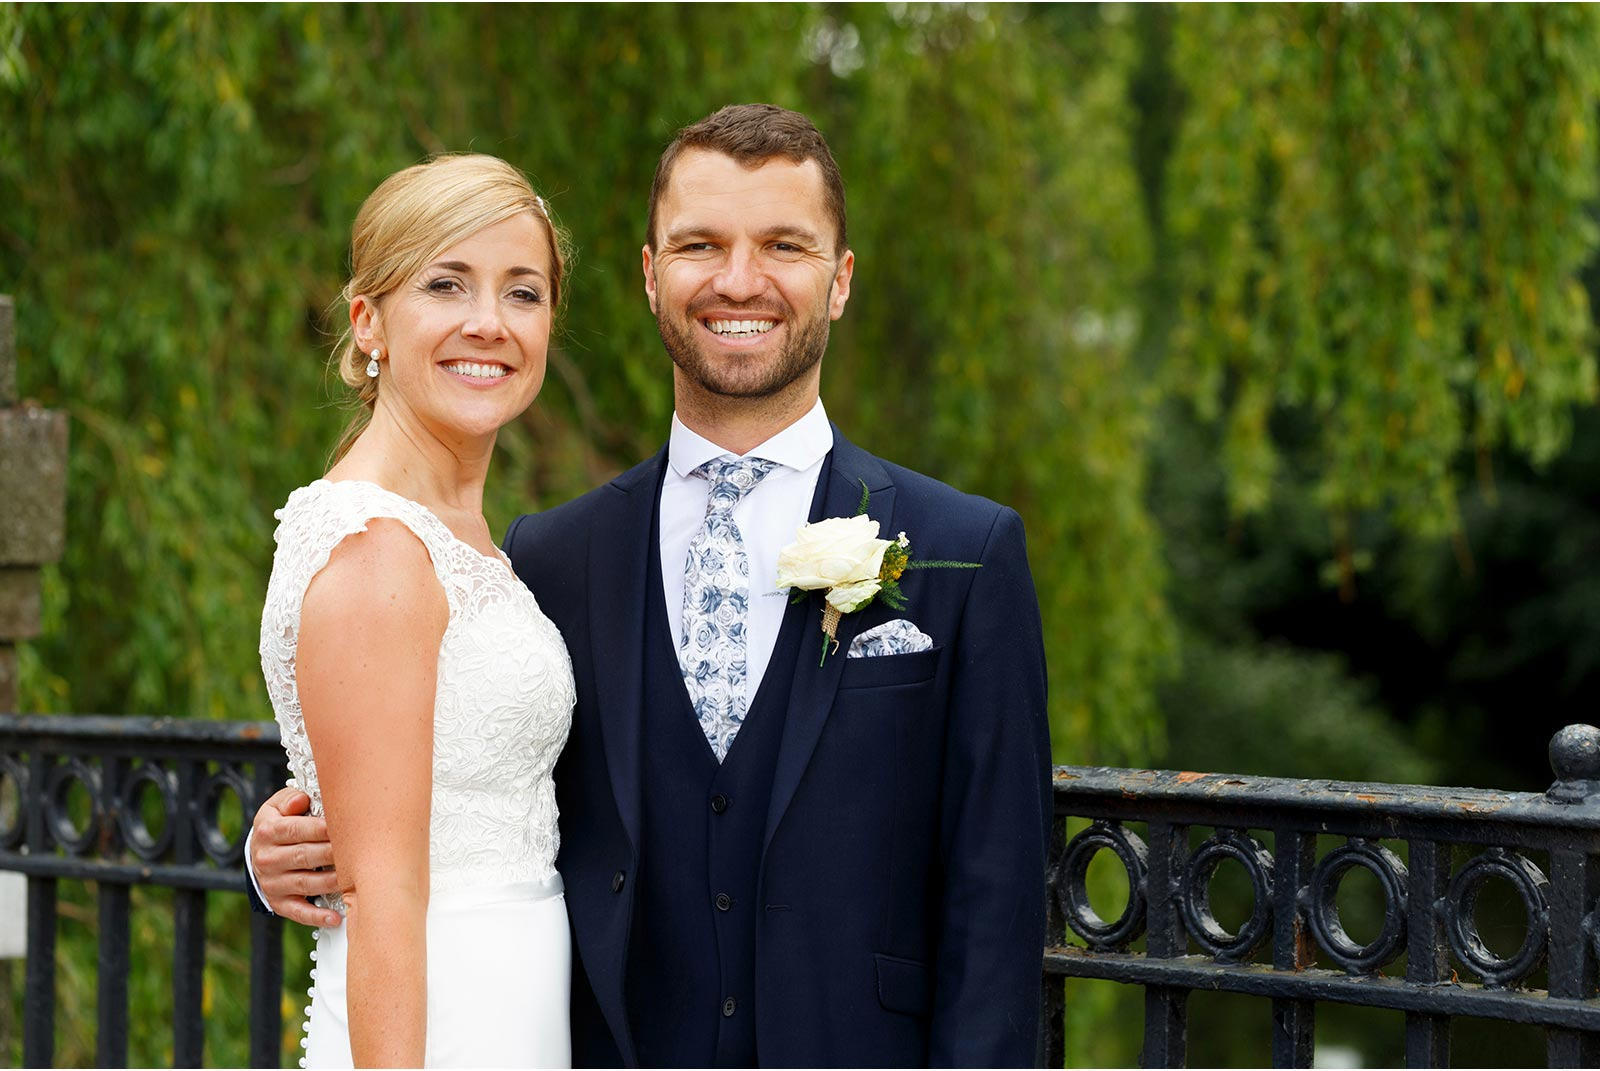 UCC wedding, Weeping willows